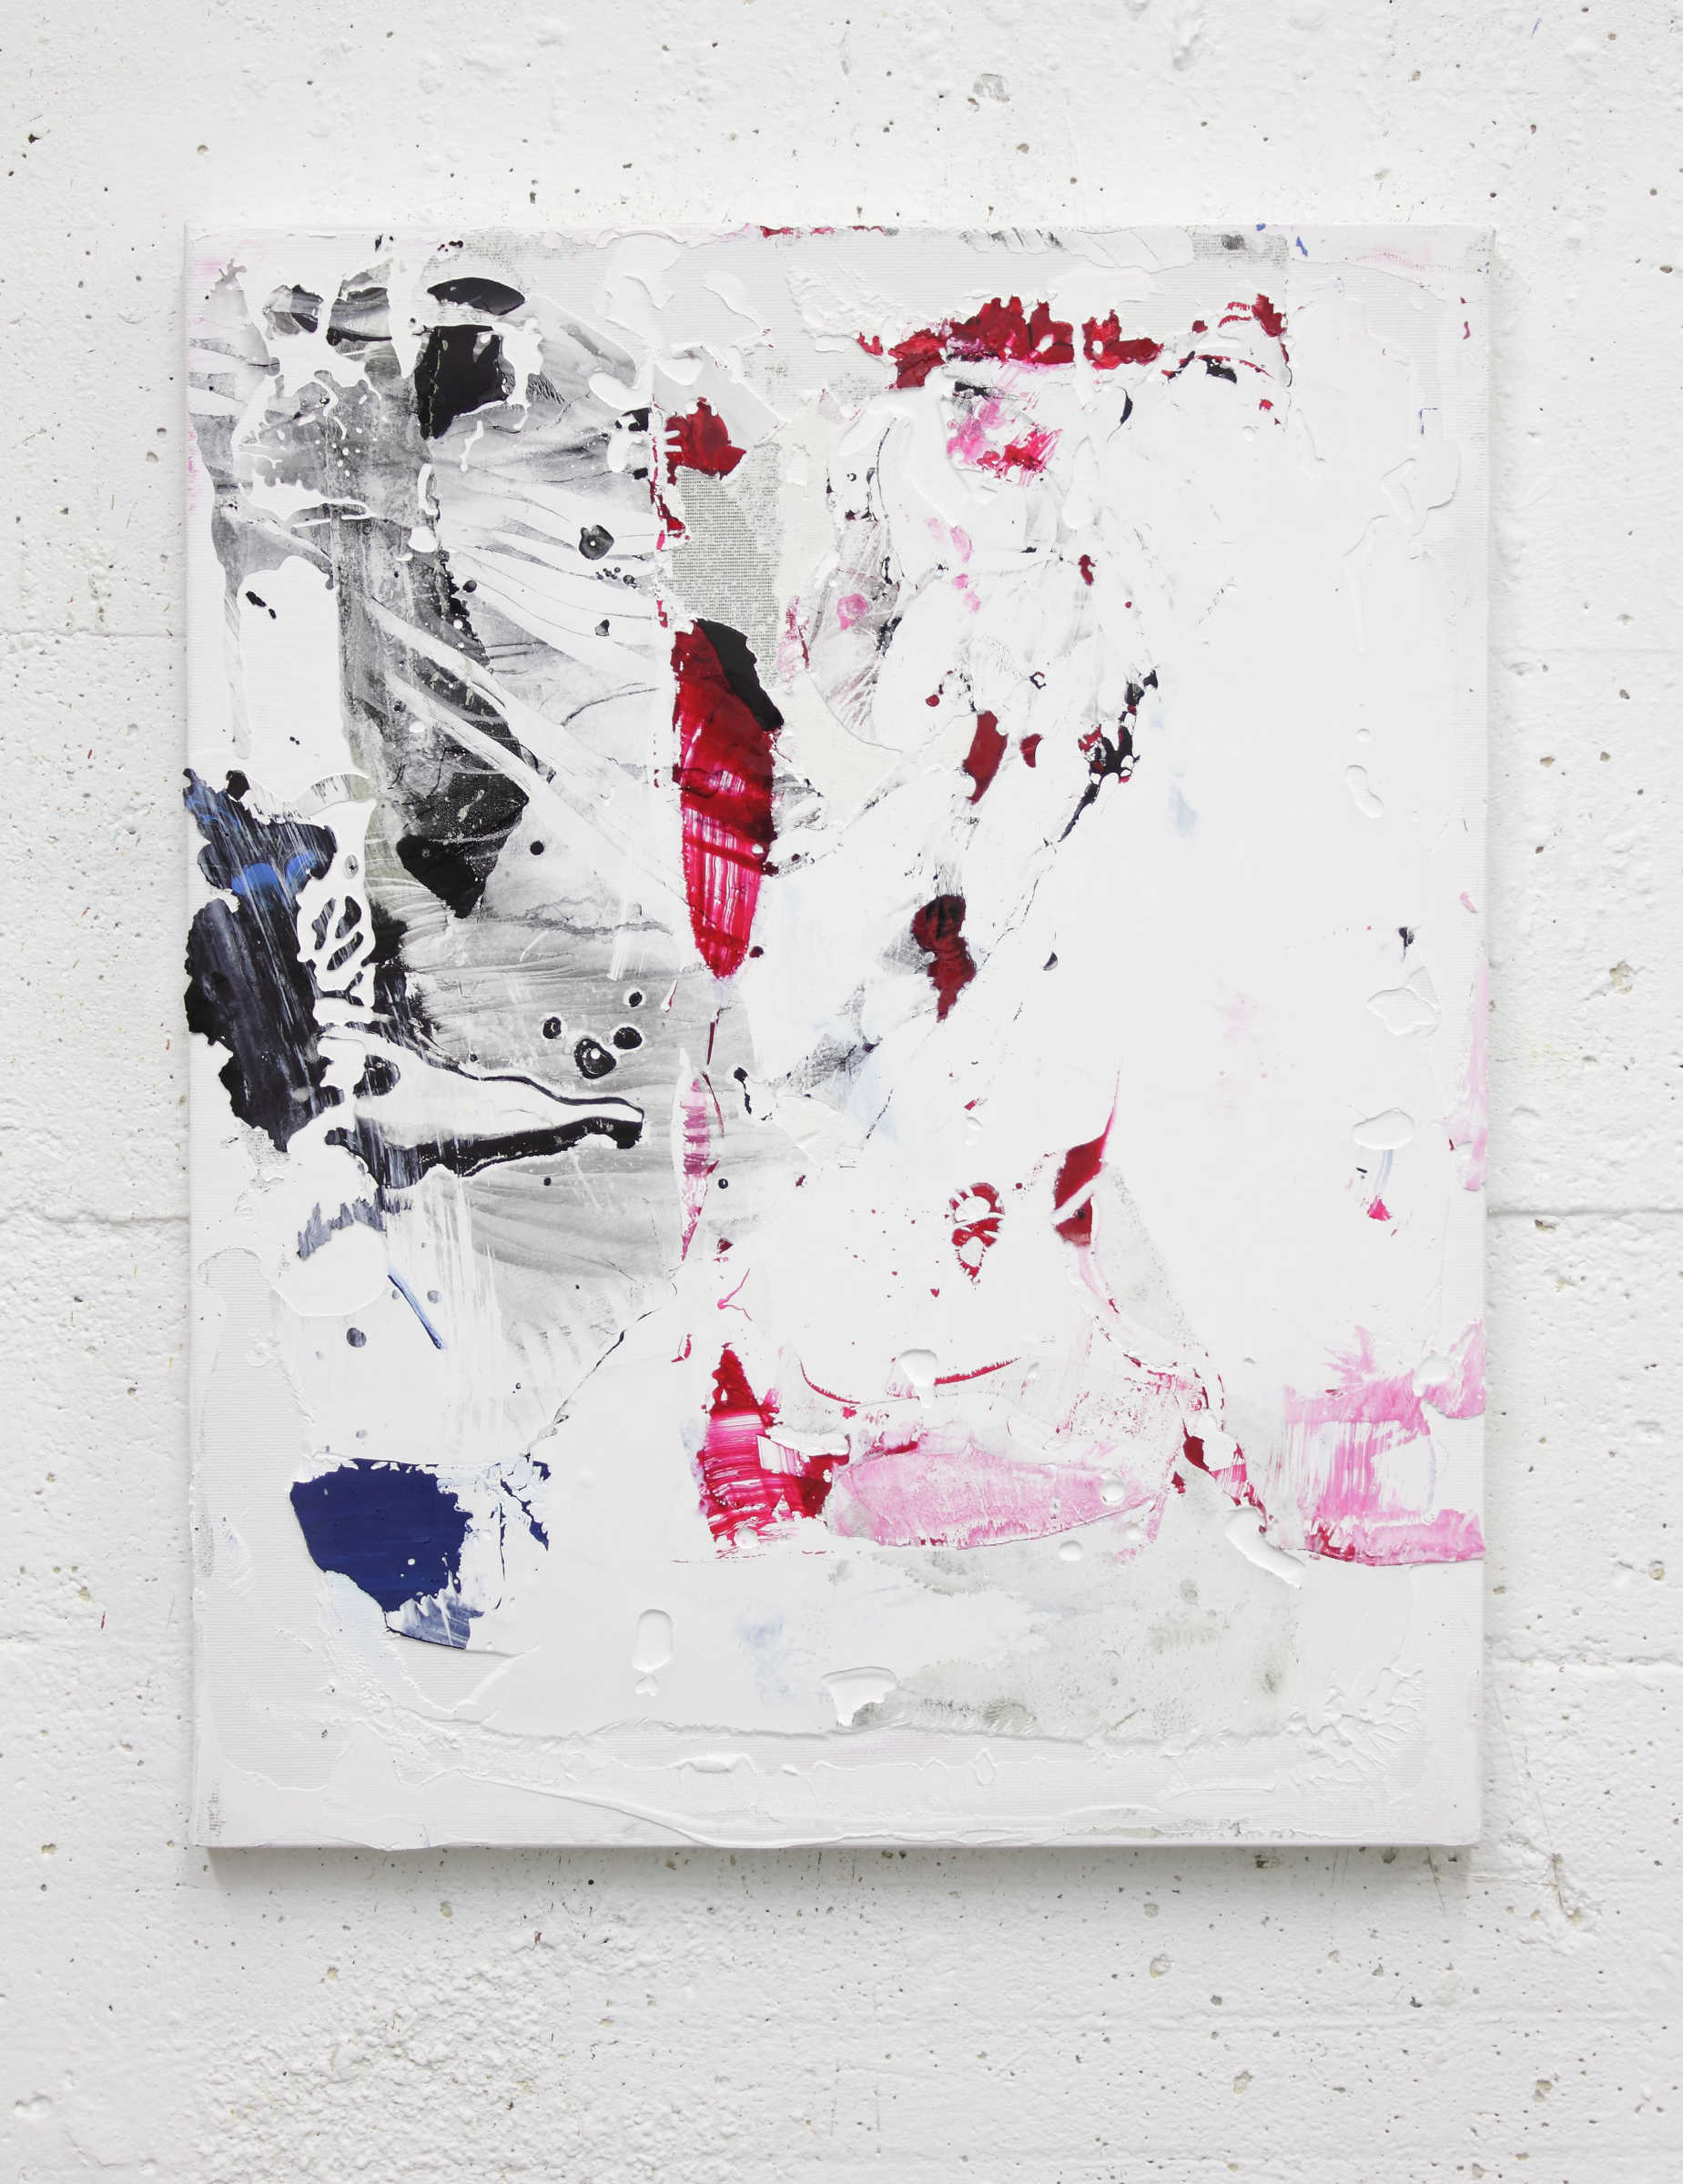 35_untitled, 2015, acrylic paint and monothype process on primer on cotton, cm 50x40